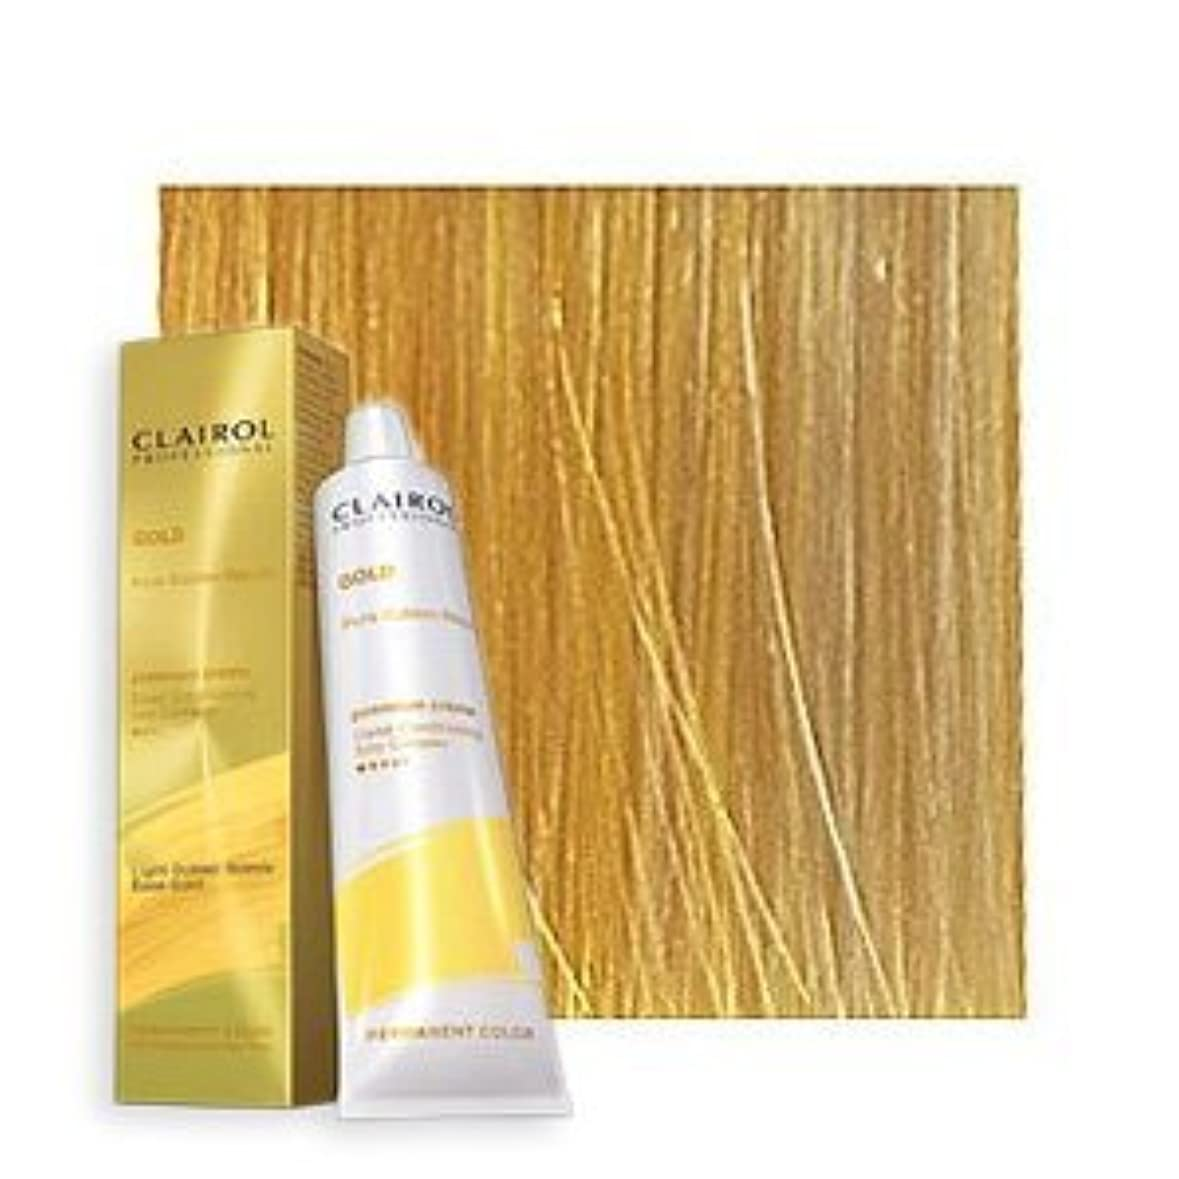 ランチ認知フェードアウトClairol Professional - SOY4PLEX - Lightest Golden Blonde 10G - 2 oz / 57 g